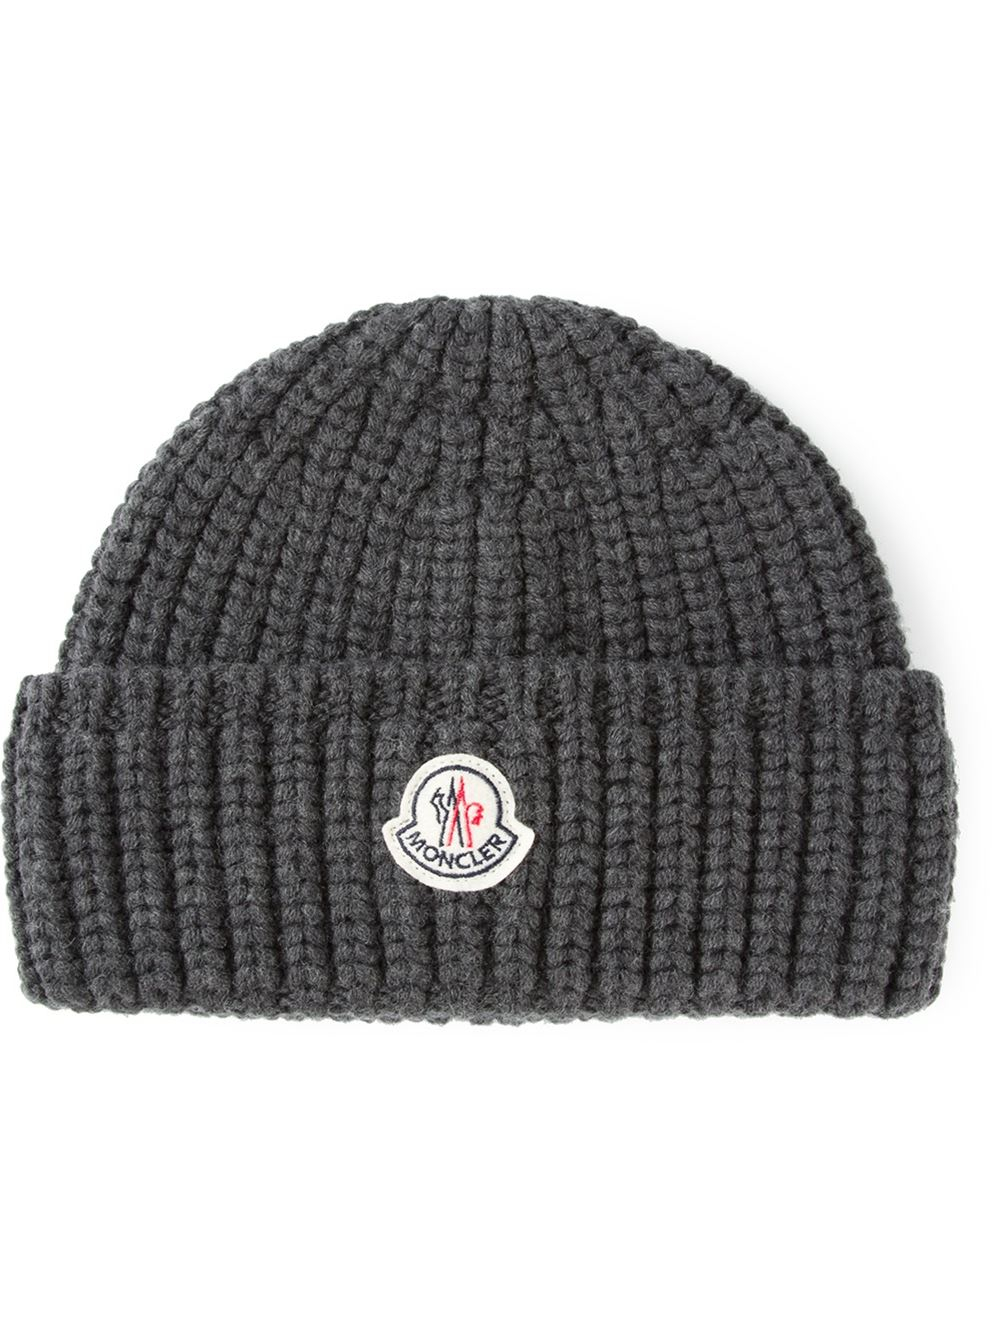 a26cebaa8ca Lyst - Moncler Chunky Knit Beanie in Gray for Men